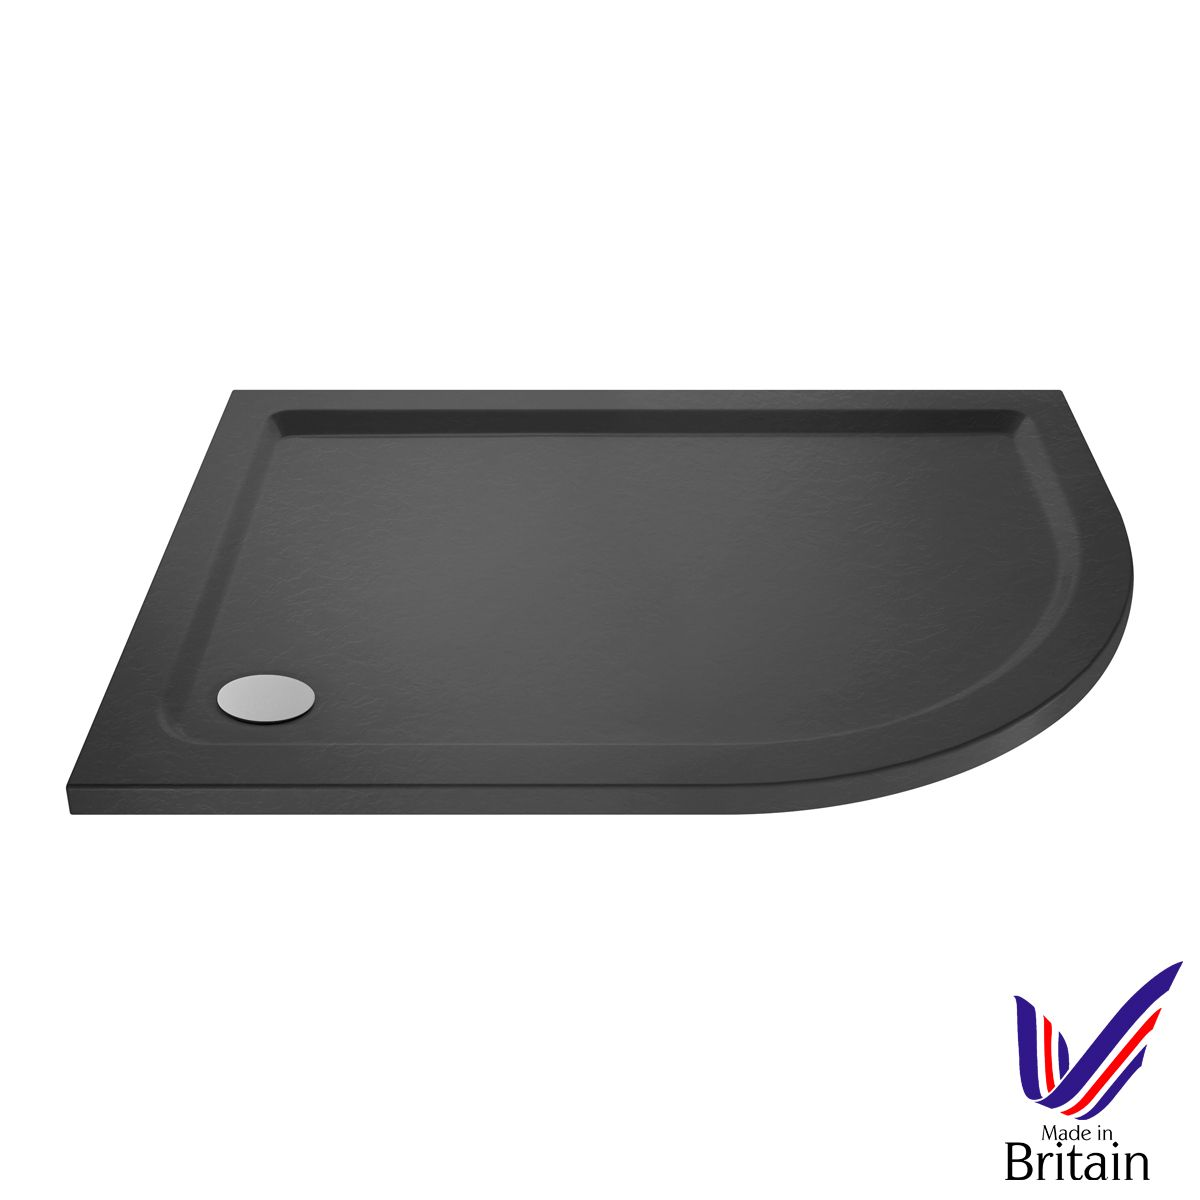 1200 x 800 Shower Tray Slate Grey Offset Quadrant Low Profile Right Hand by Pearlstone